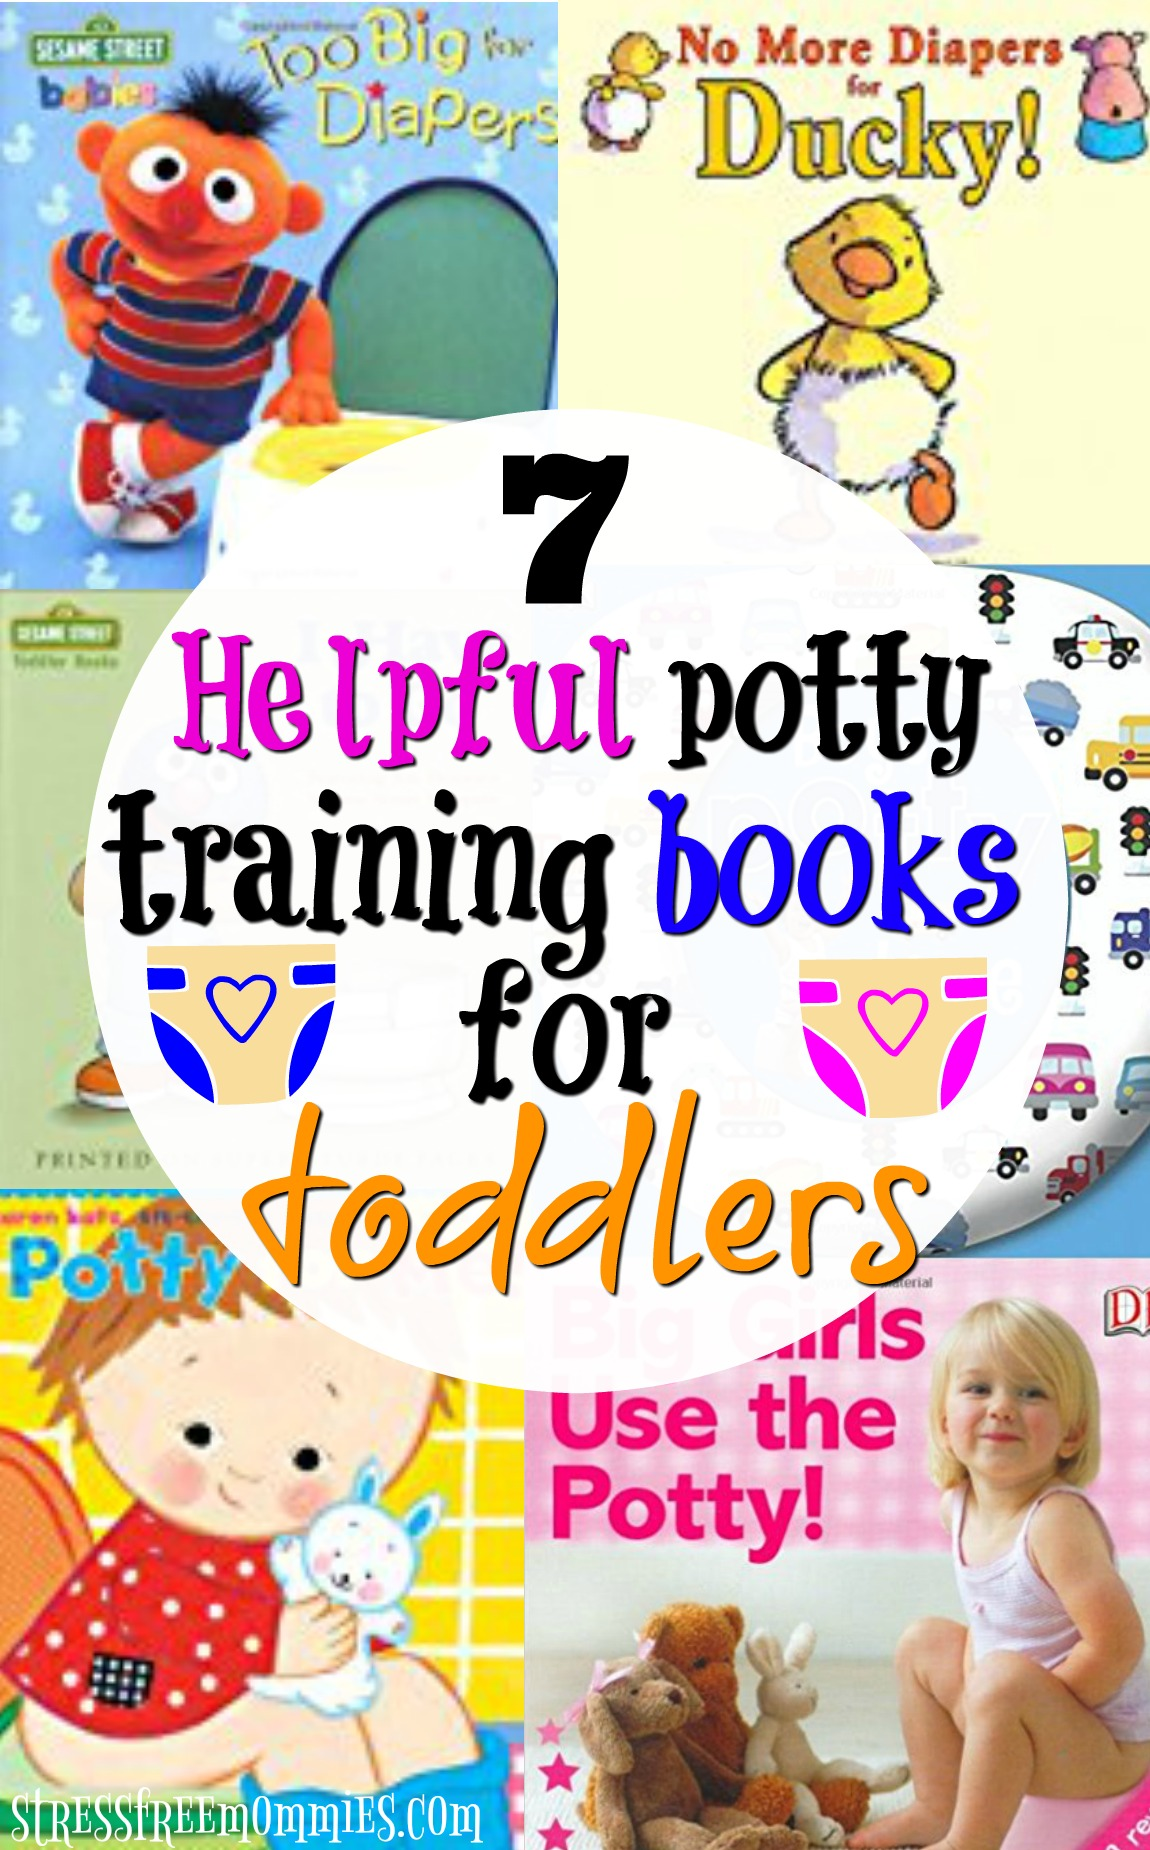 Are you looking for ways to introduce the potty to your toddler? Reading potty training books is a great way for them to learn and help them visualize all about potty training.